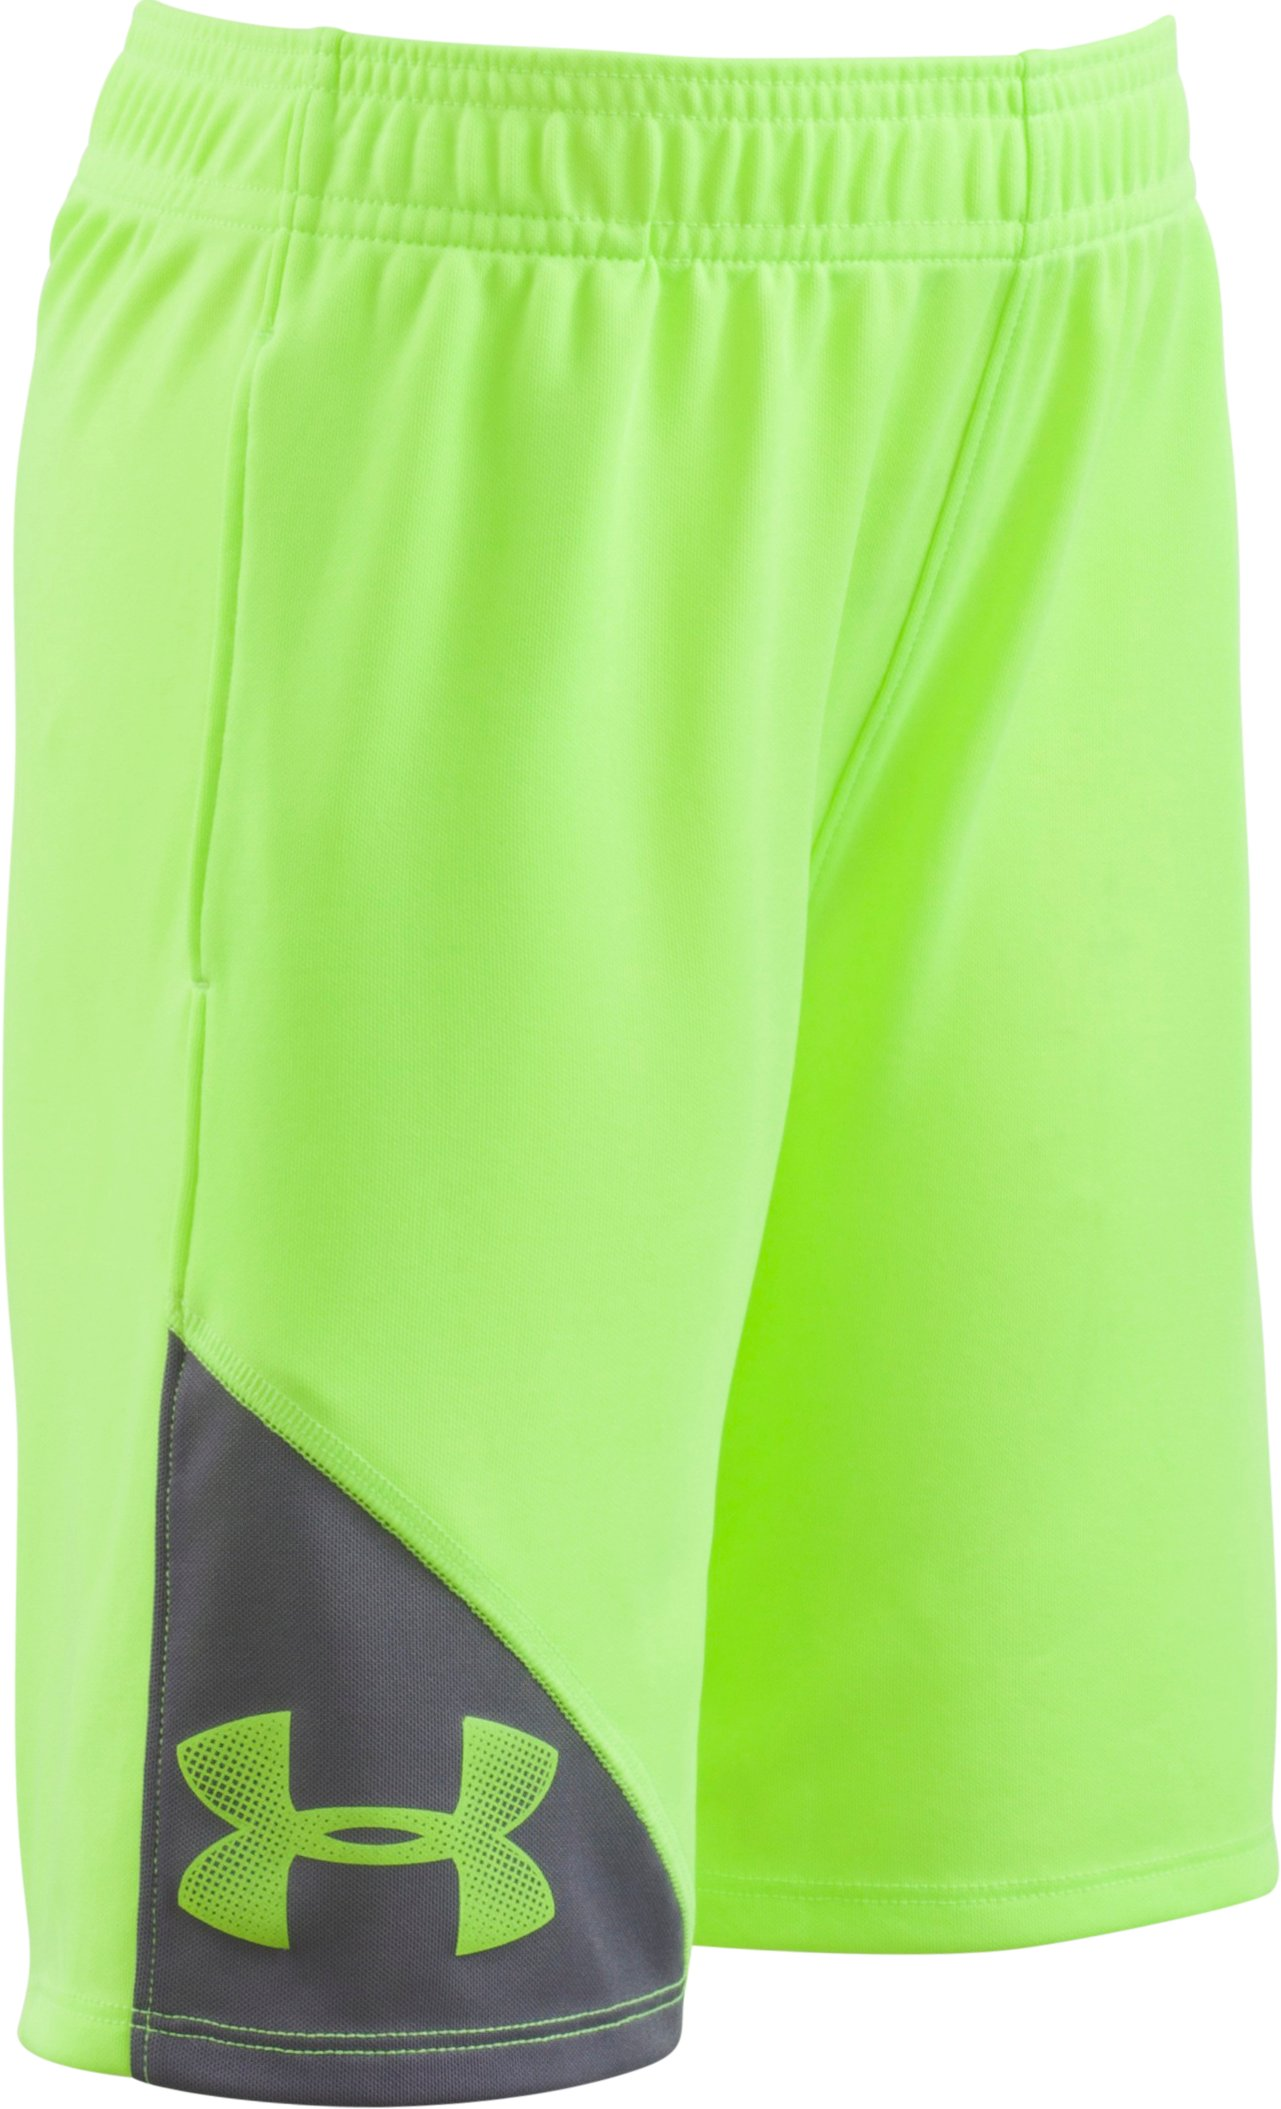 Boys' Pre-School UA Prototype Shorts, FUEL GREEN